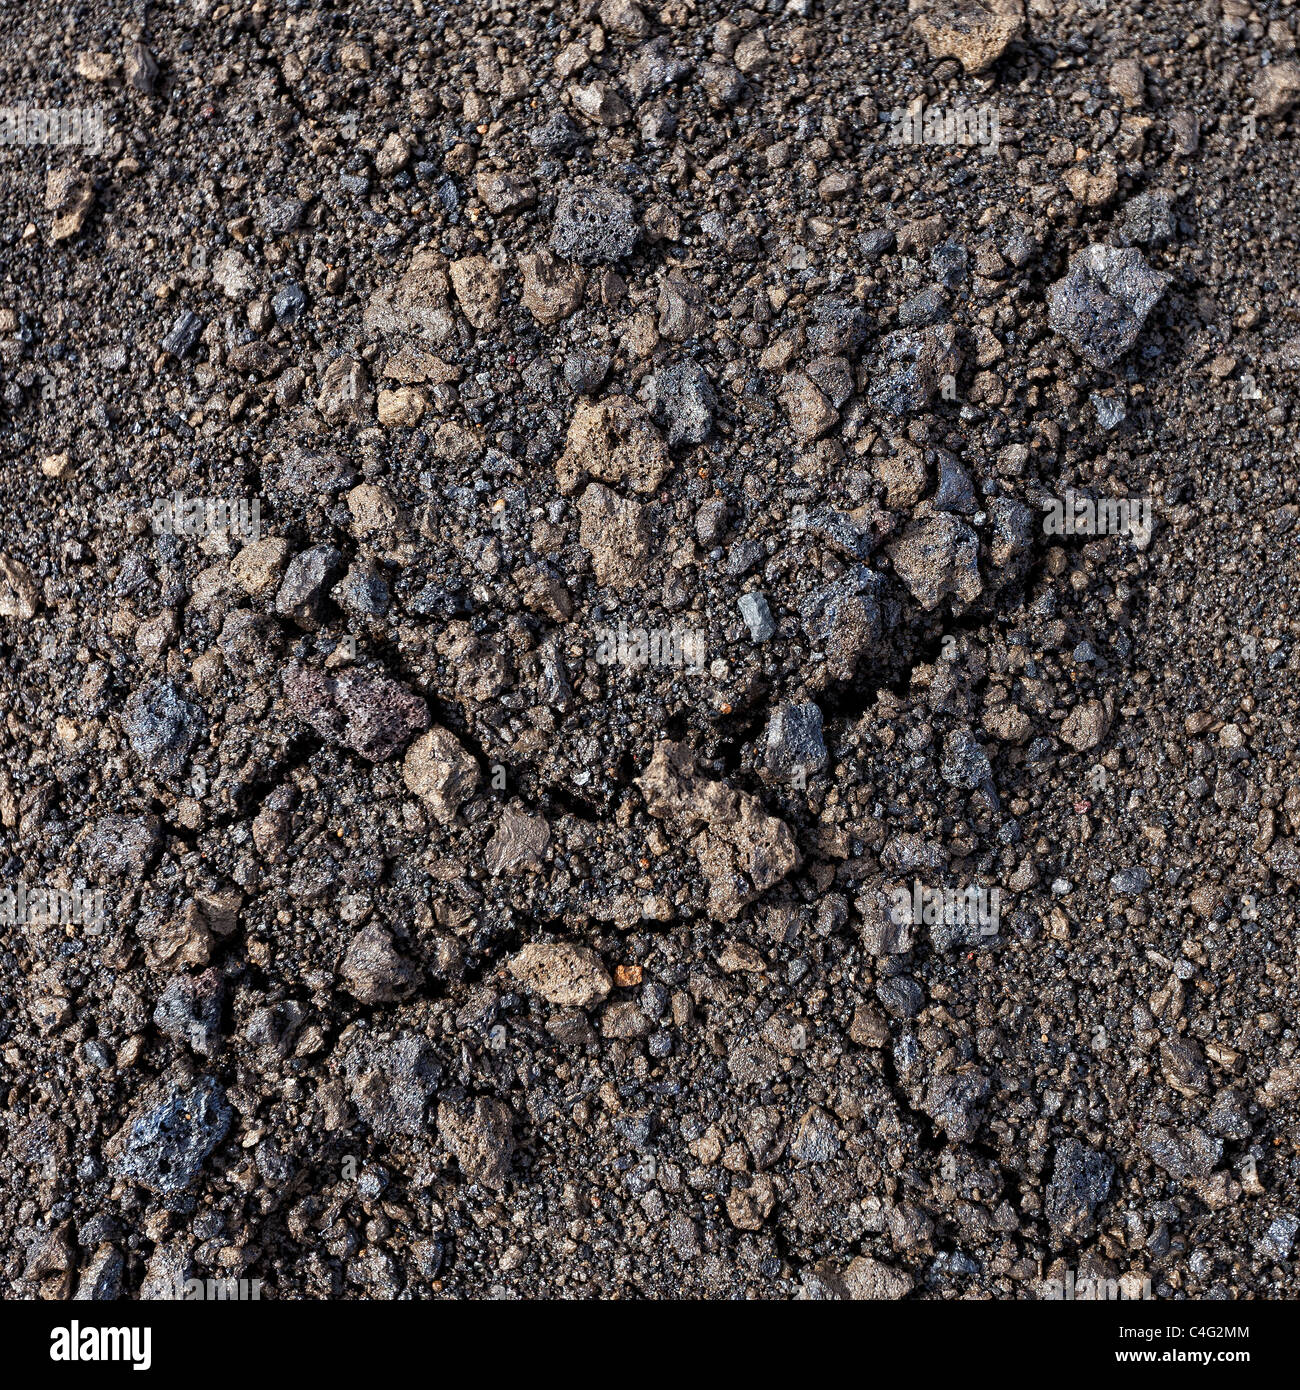 Fresh ash, pumice, lava, from the Grimsvotn volcanic eruption, Iceland - Stock Image